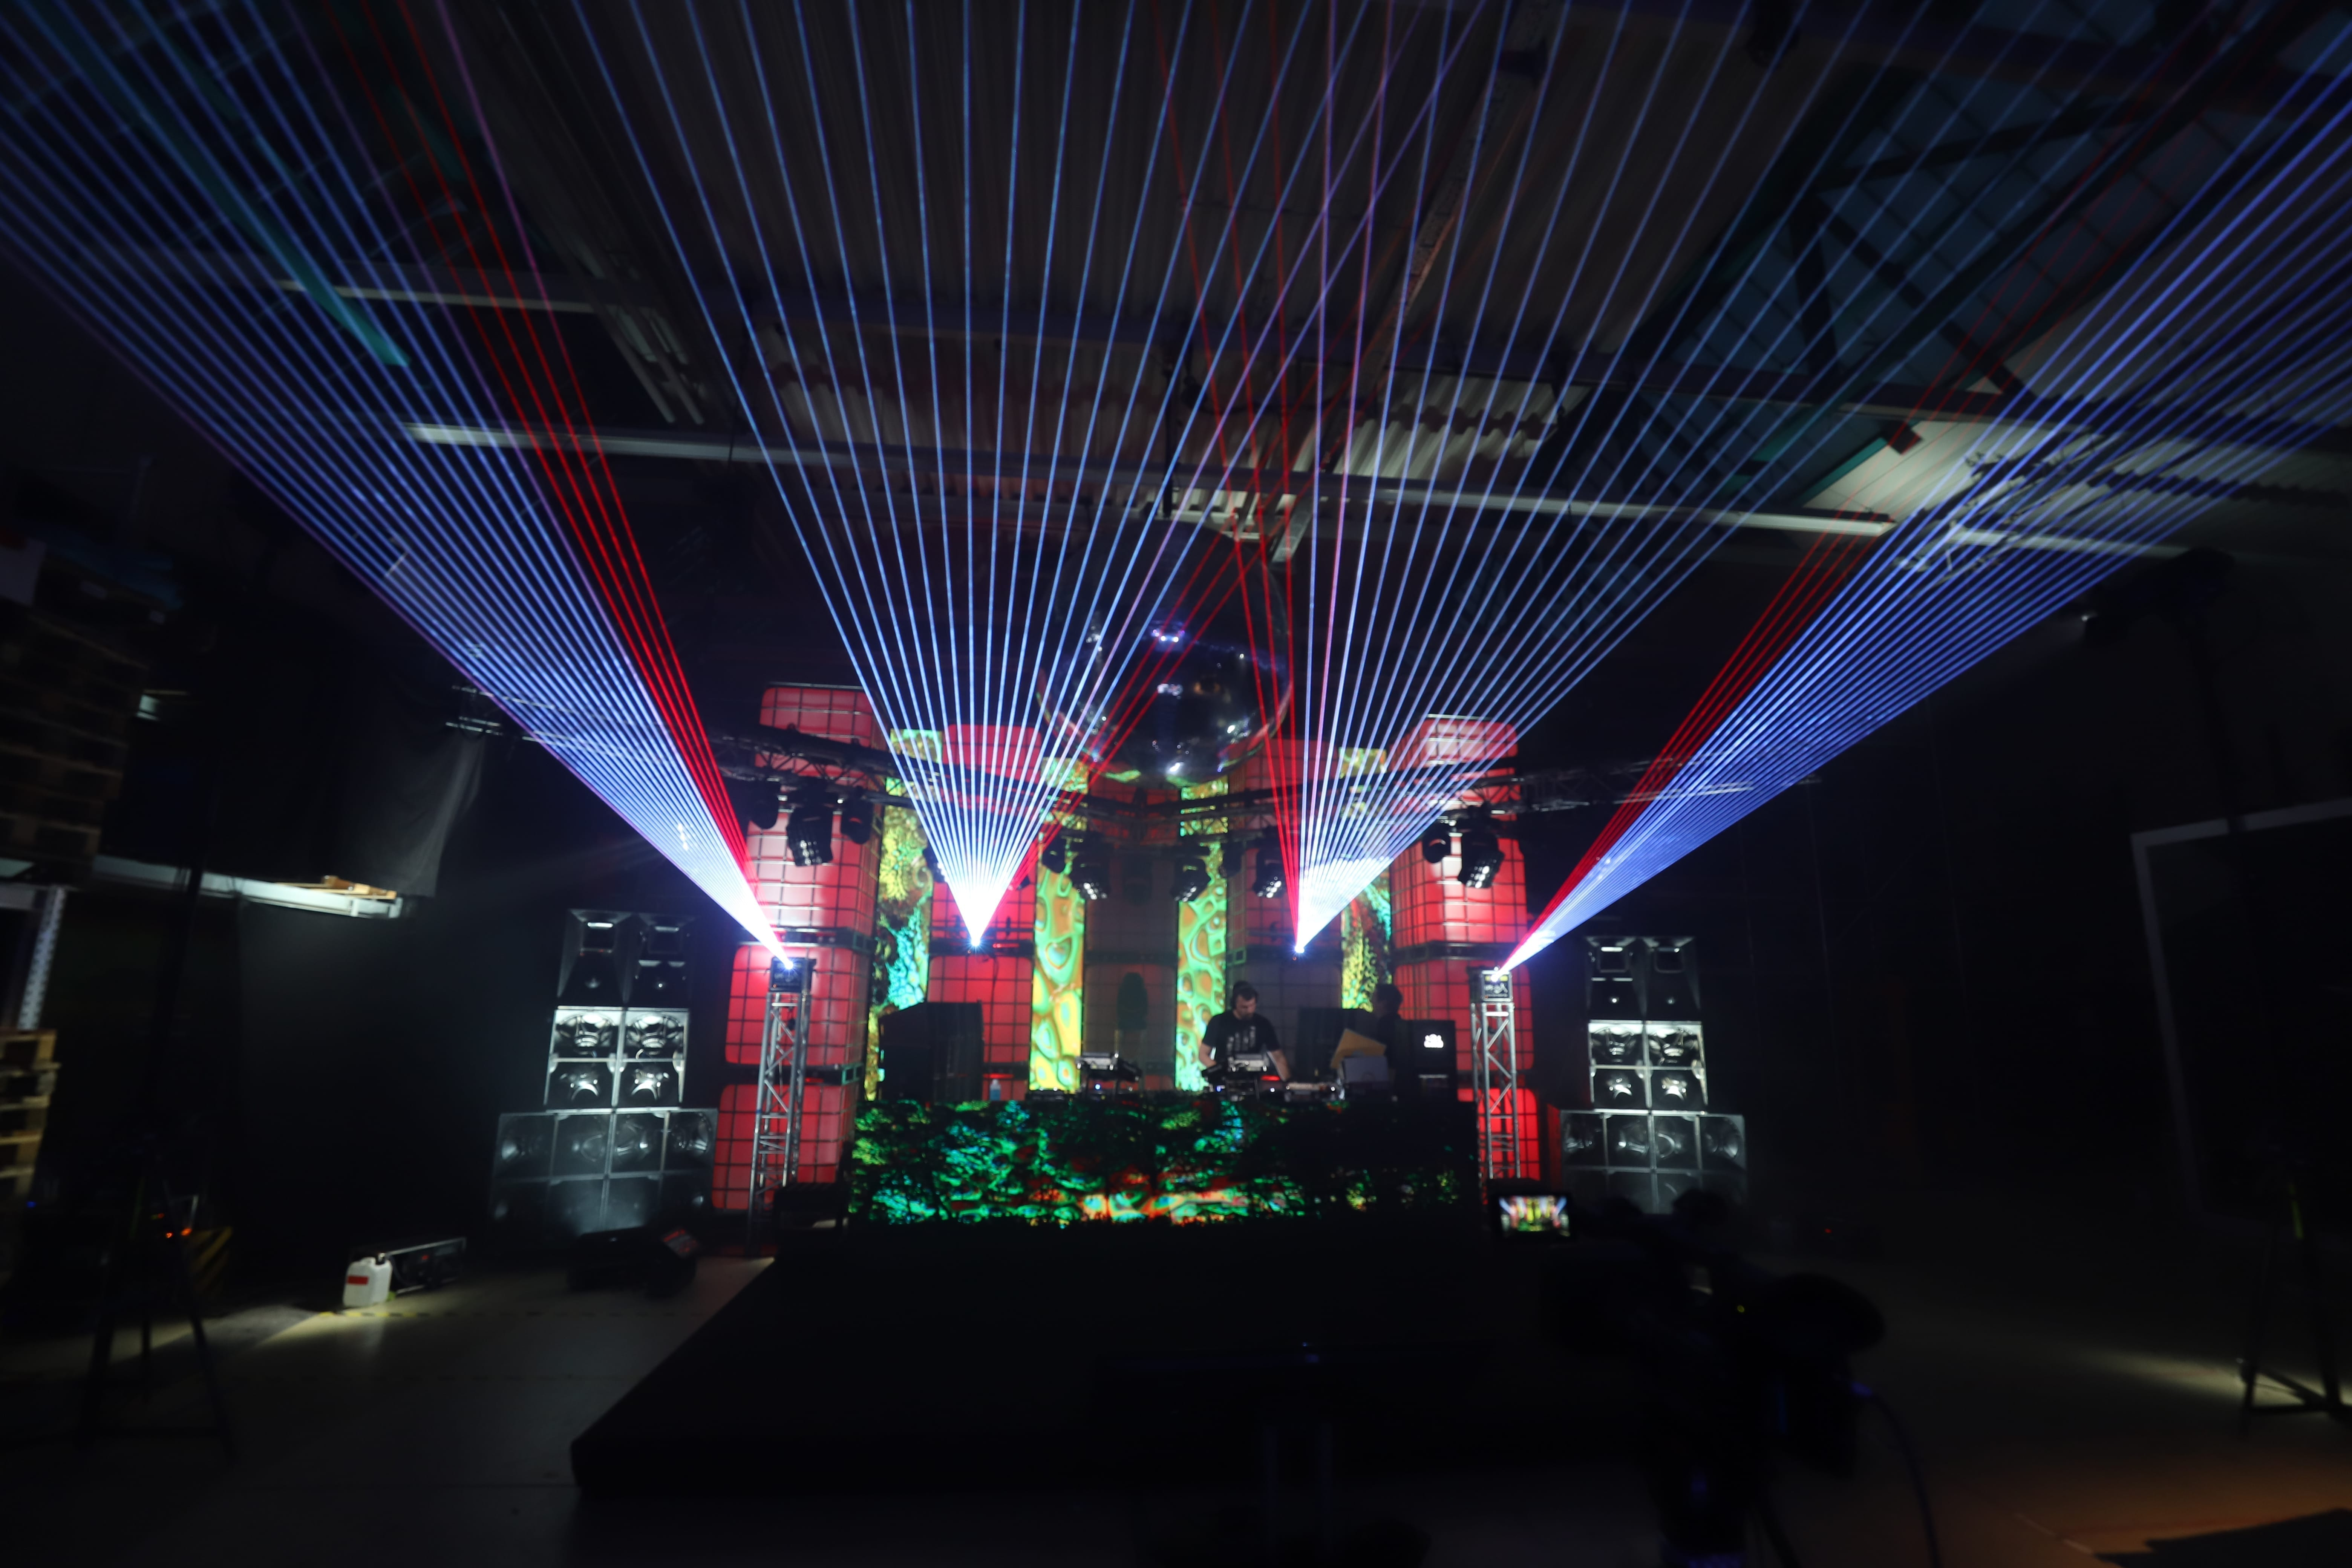 Lasershow by B-Musik